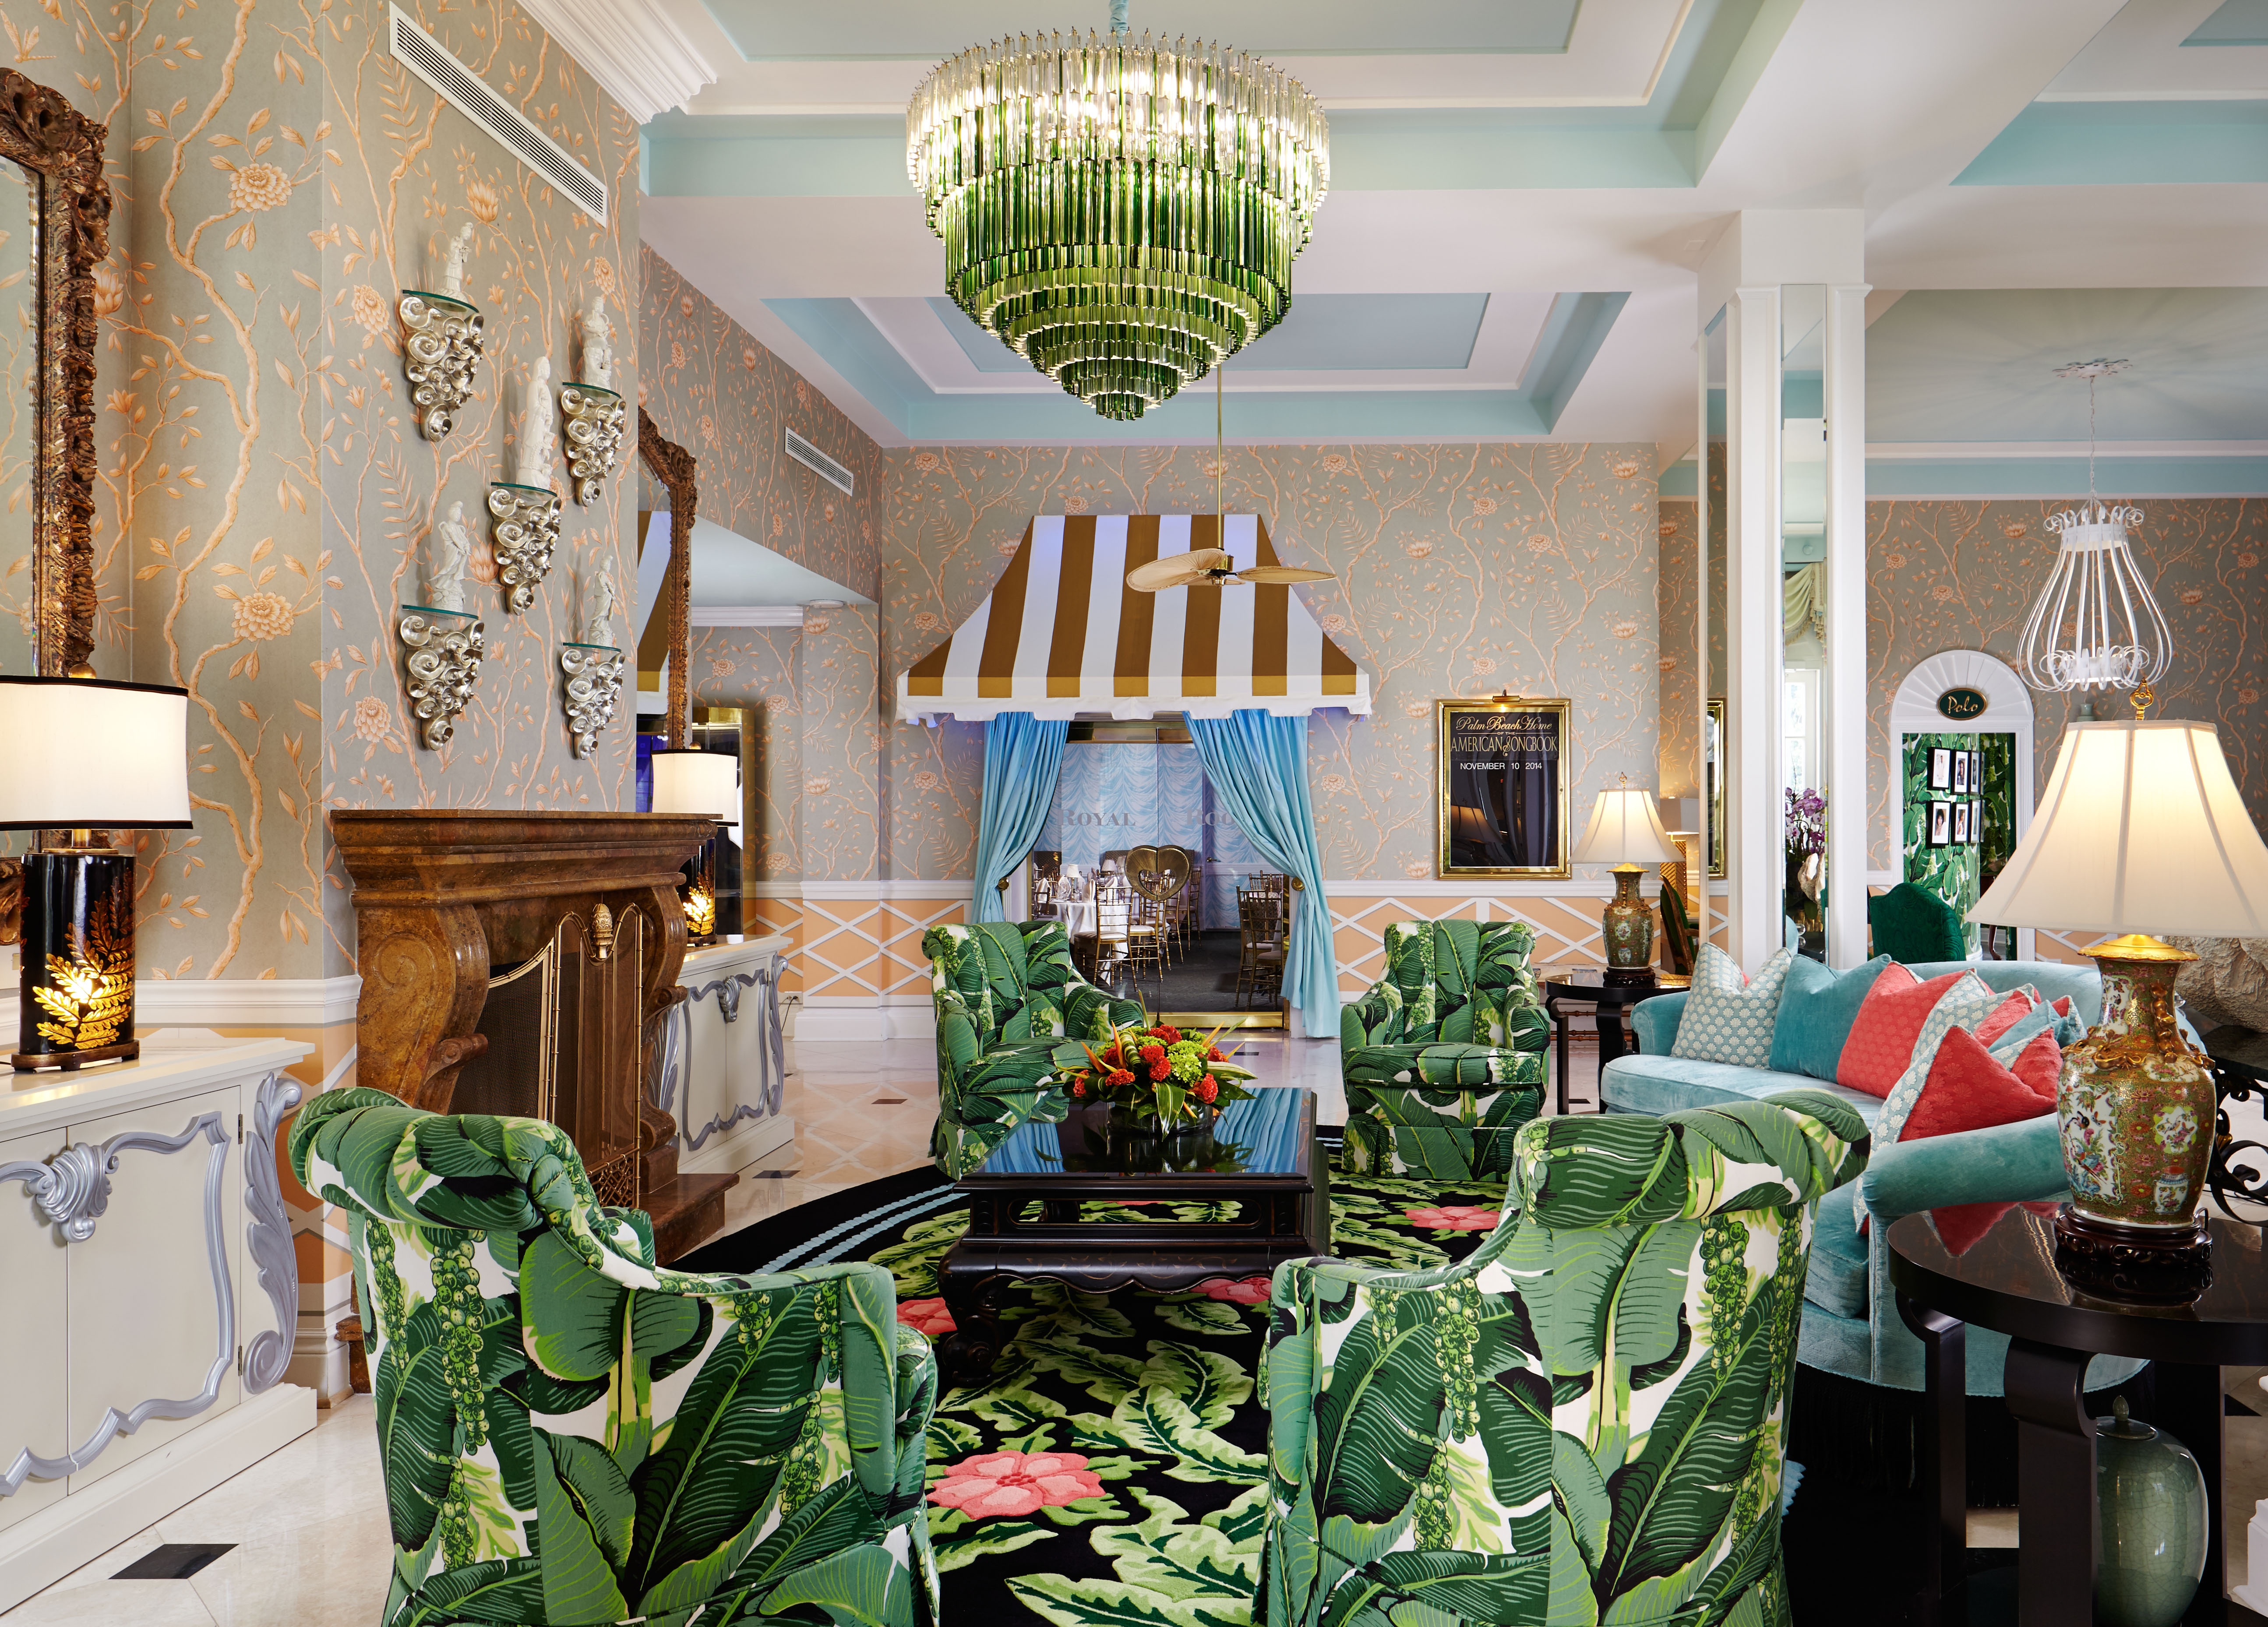 Colony Hotel – Lobby – Design by Dorothy Draper and Co graphic